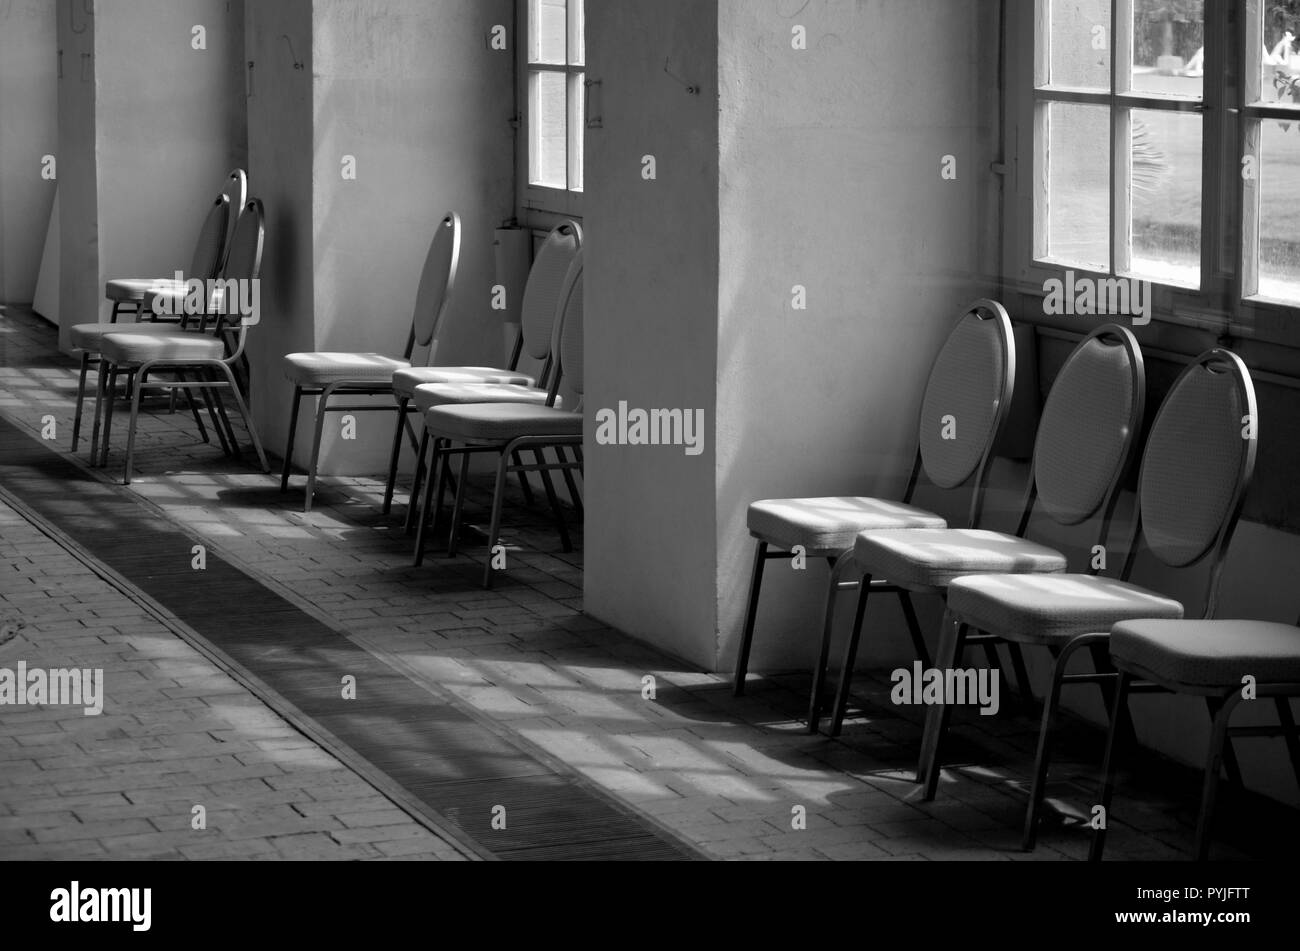 Chairs standing under windows in a large hall - monochrome image - Stock Image